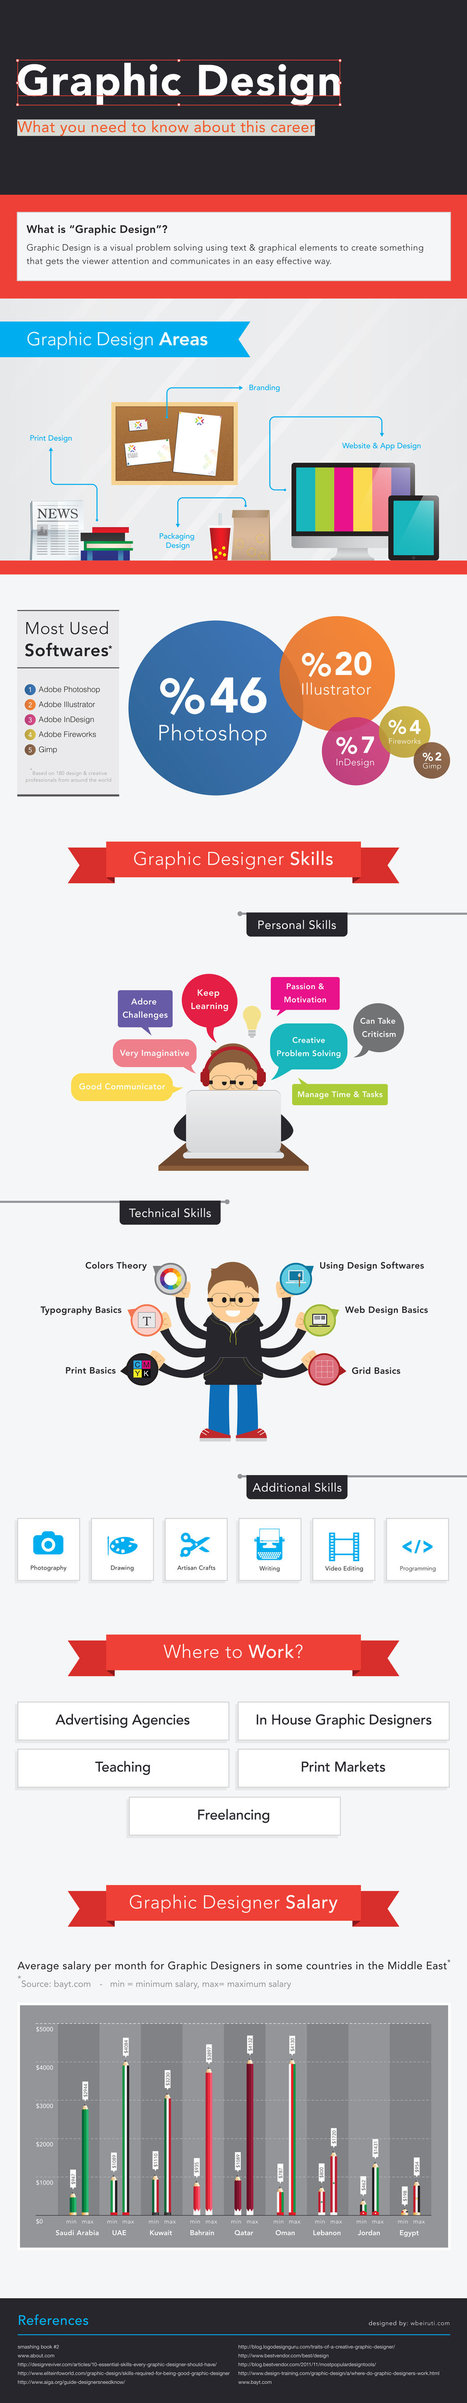 Graphic Design Infographic | Drawing References and Resources | Scoop.it